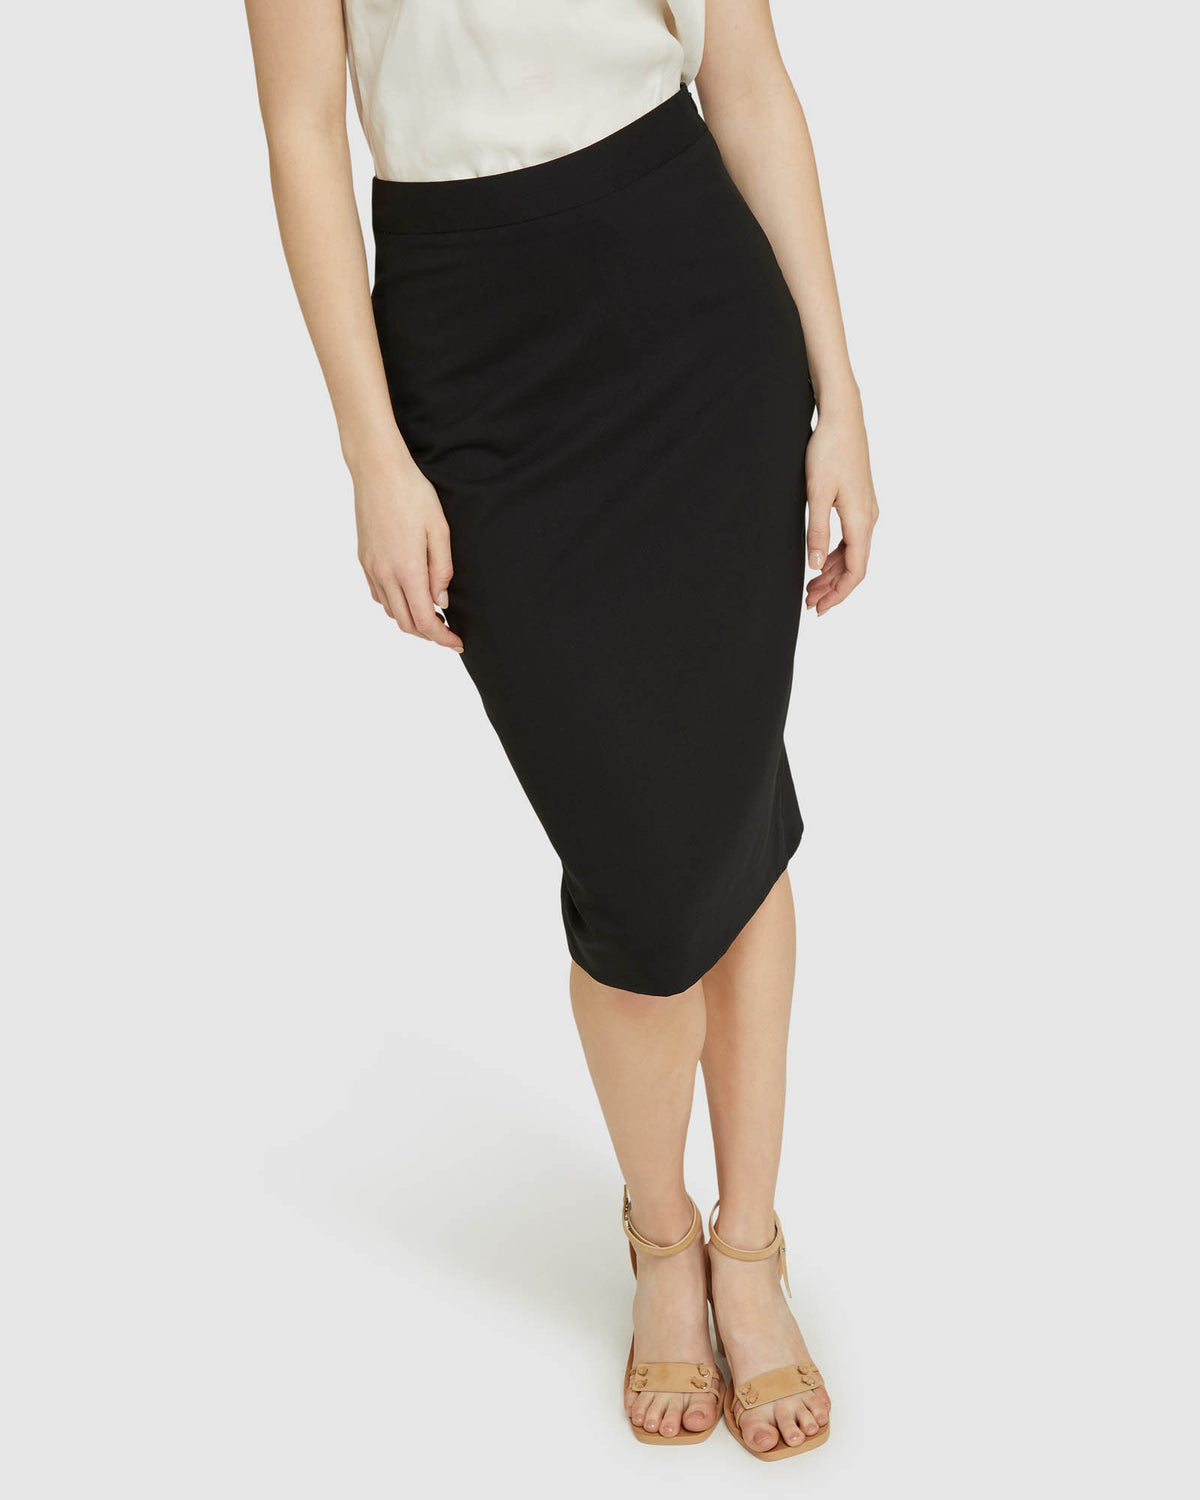 PEGGY BLK WOOL STRETCH SUIT SKIRT BLACK